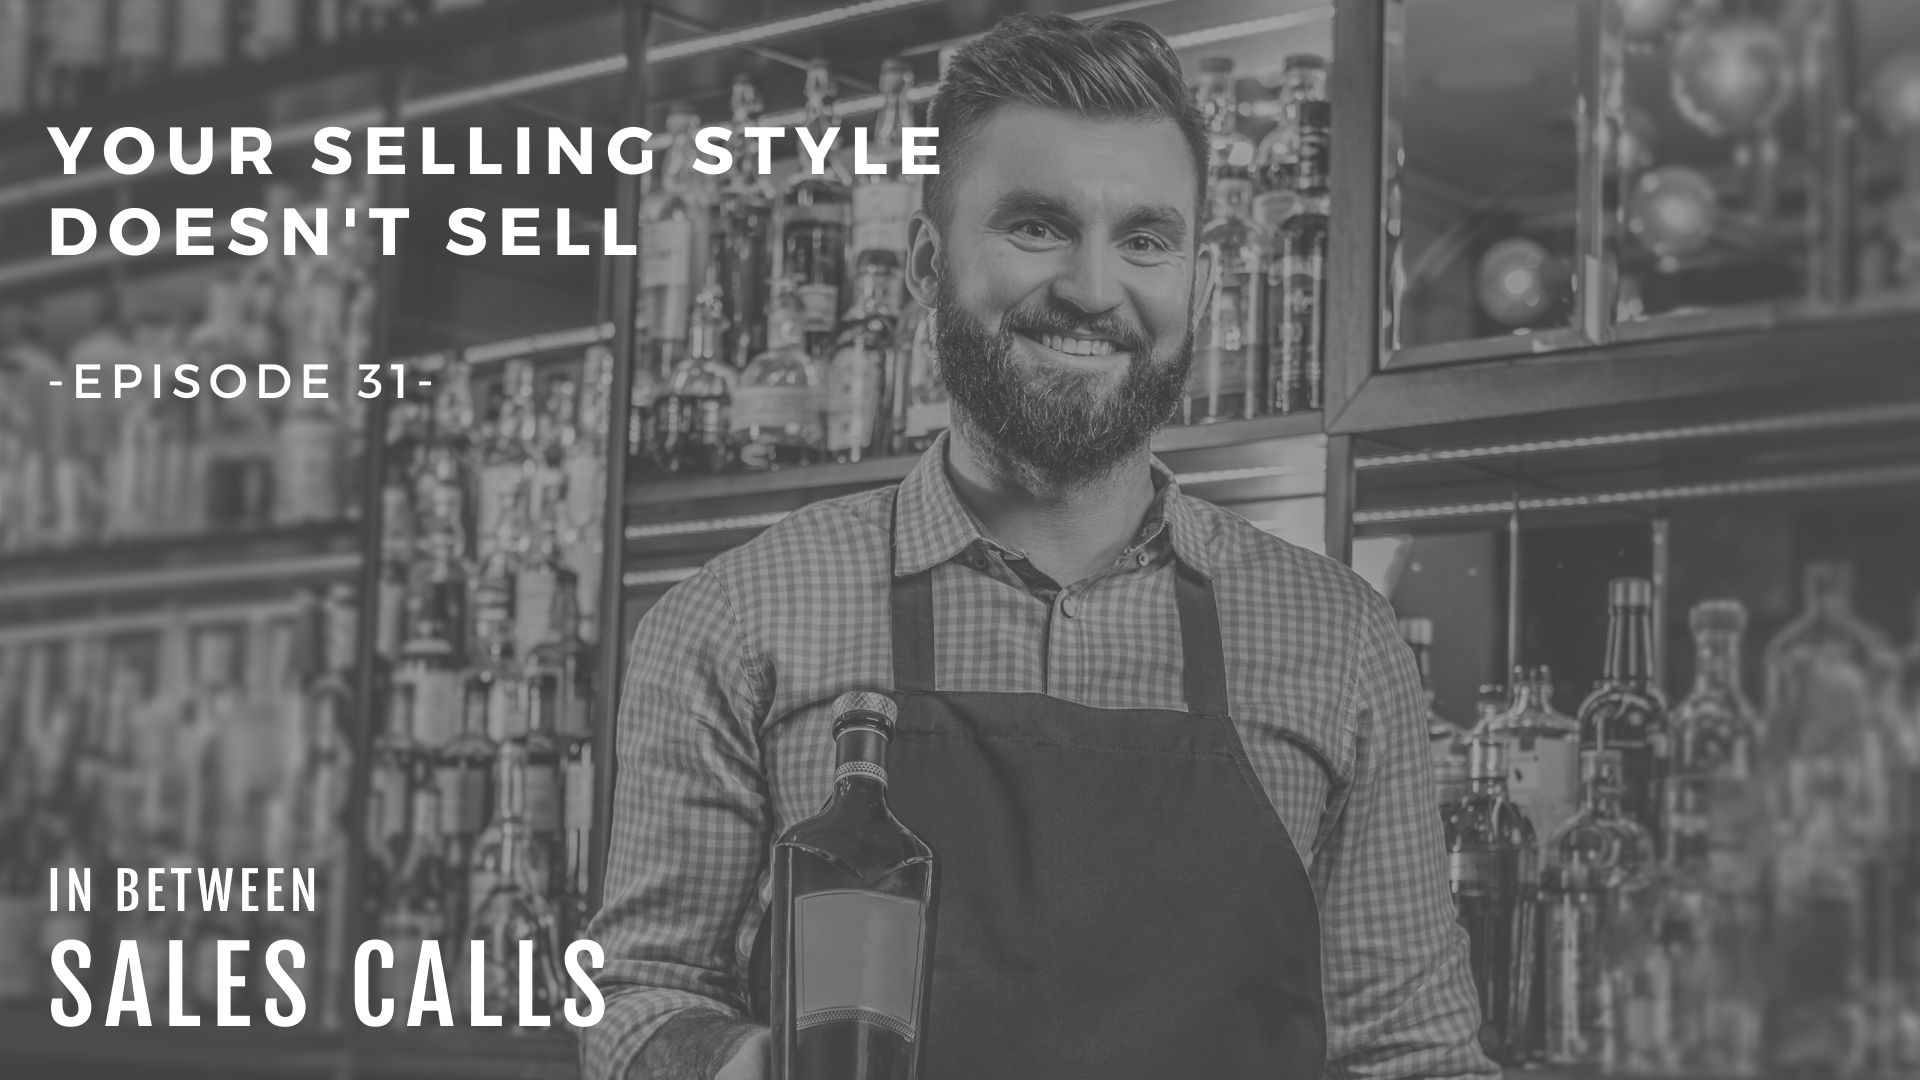 The-Right-Selling-Style-modern-sales-training-in-between-sales-calls-podcast